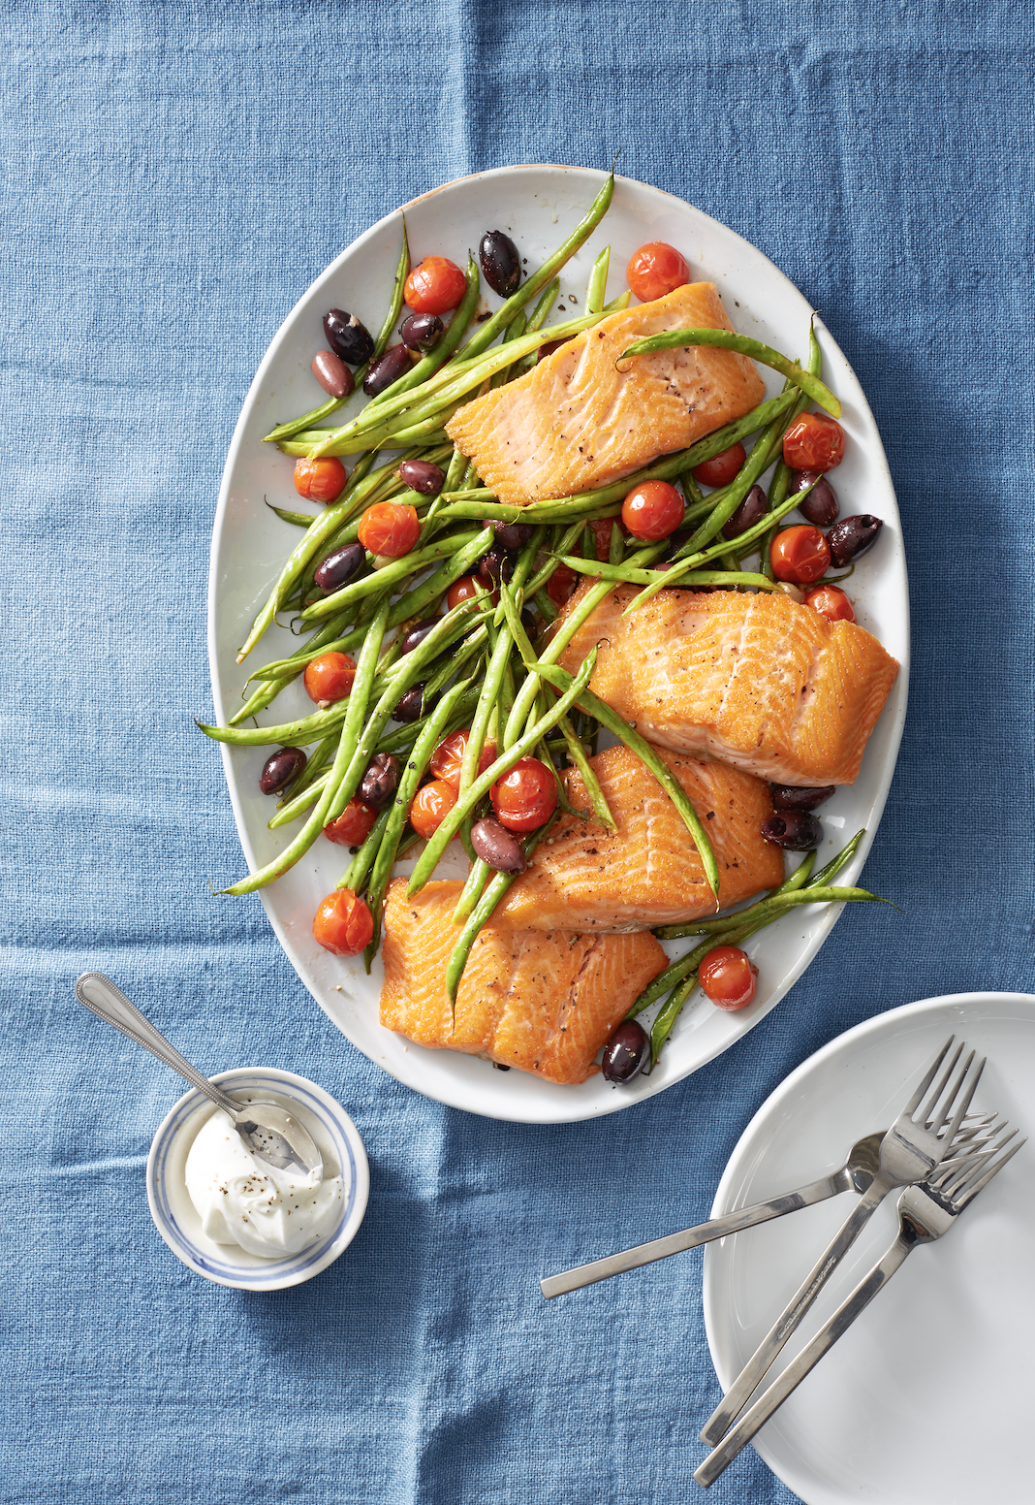 10 Easy Low-Calorie Meals - Low Cal Recipes That'll Fill You Up